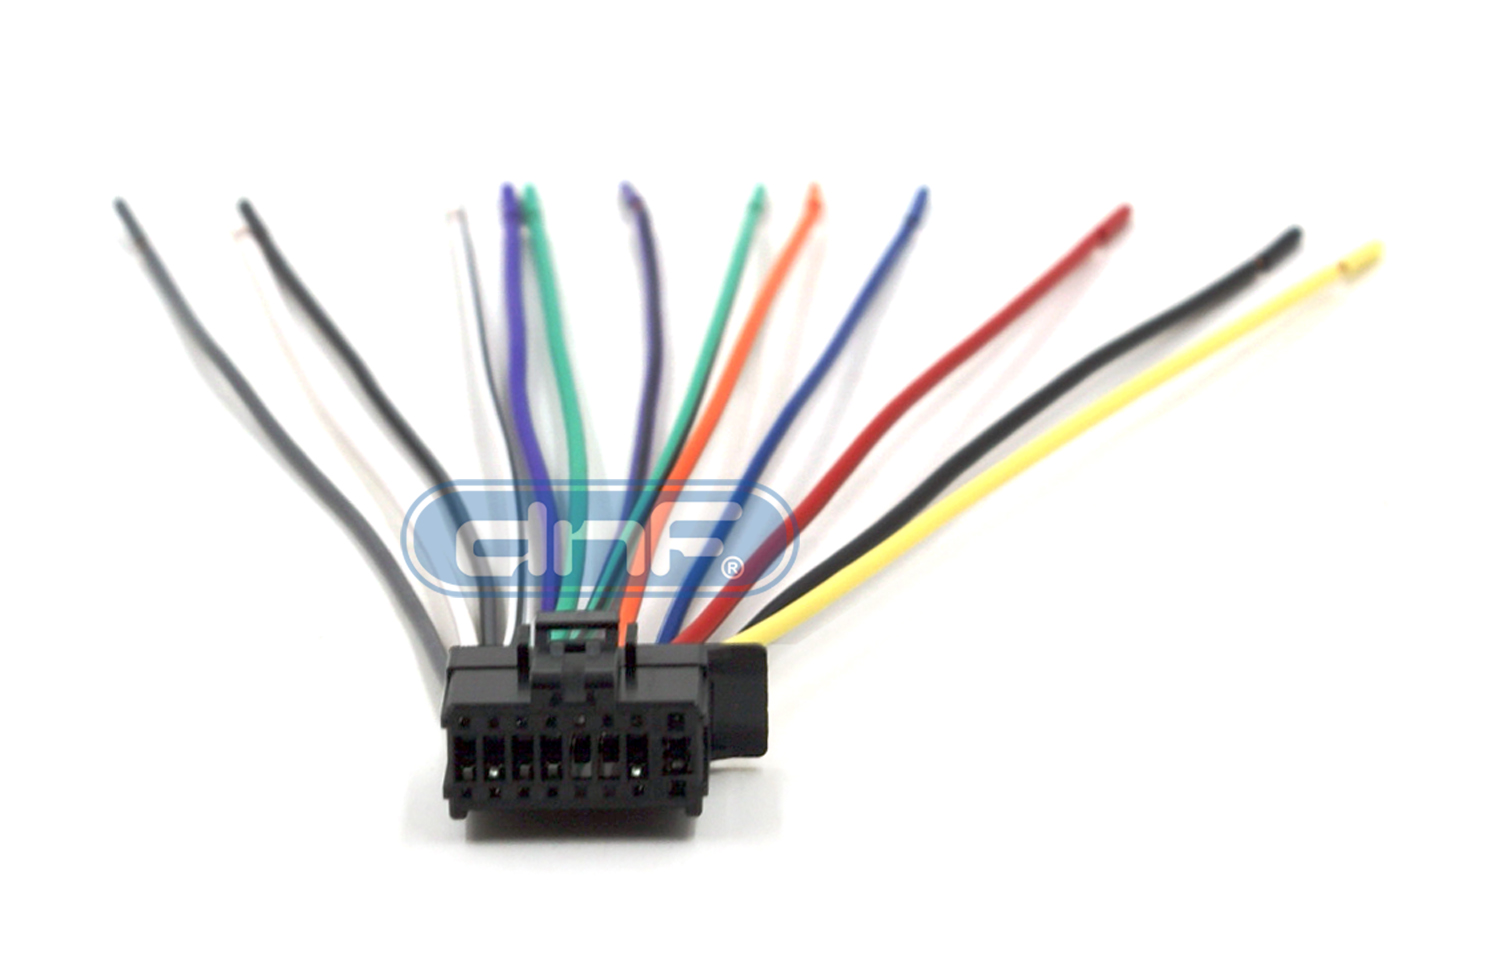 hight resolution of versionid ipmqheaivifn0kzfn0hree1btm0ofuor pioneer deh 23ub deh 2400ub deh 24ub wiring harness ships